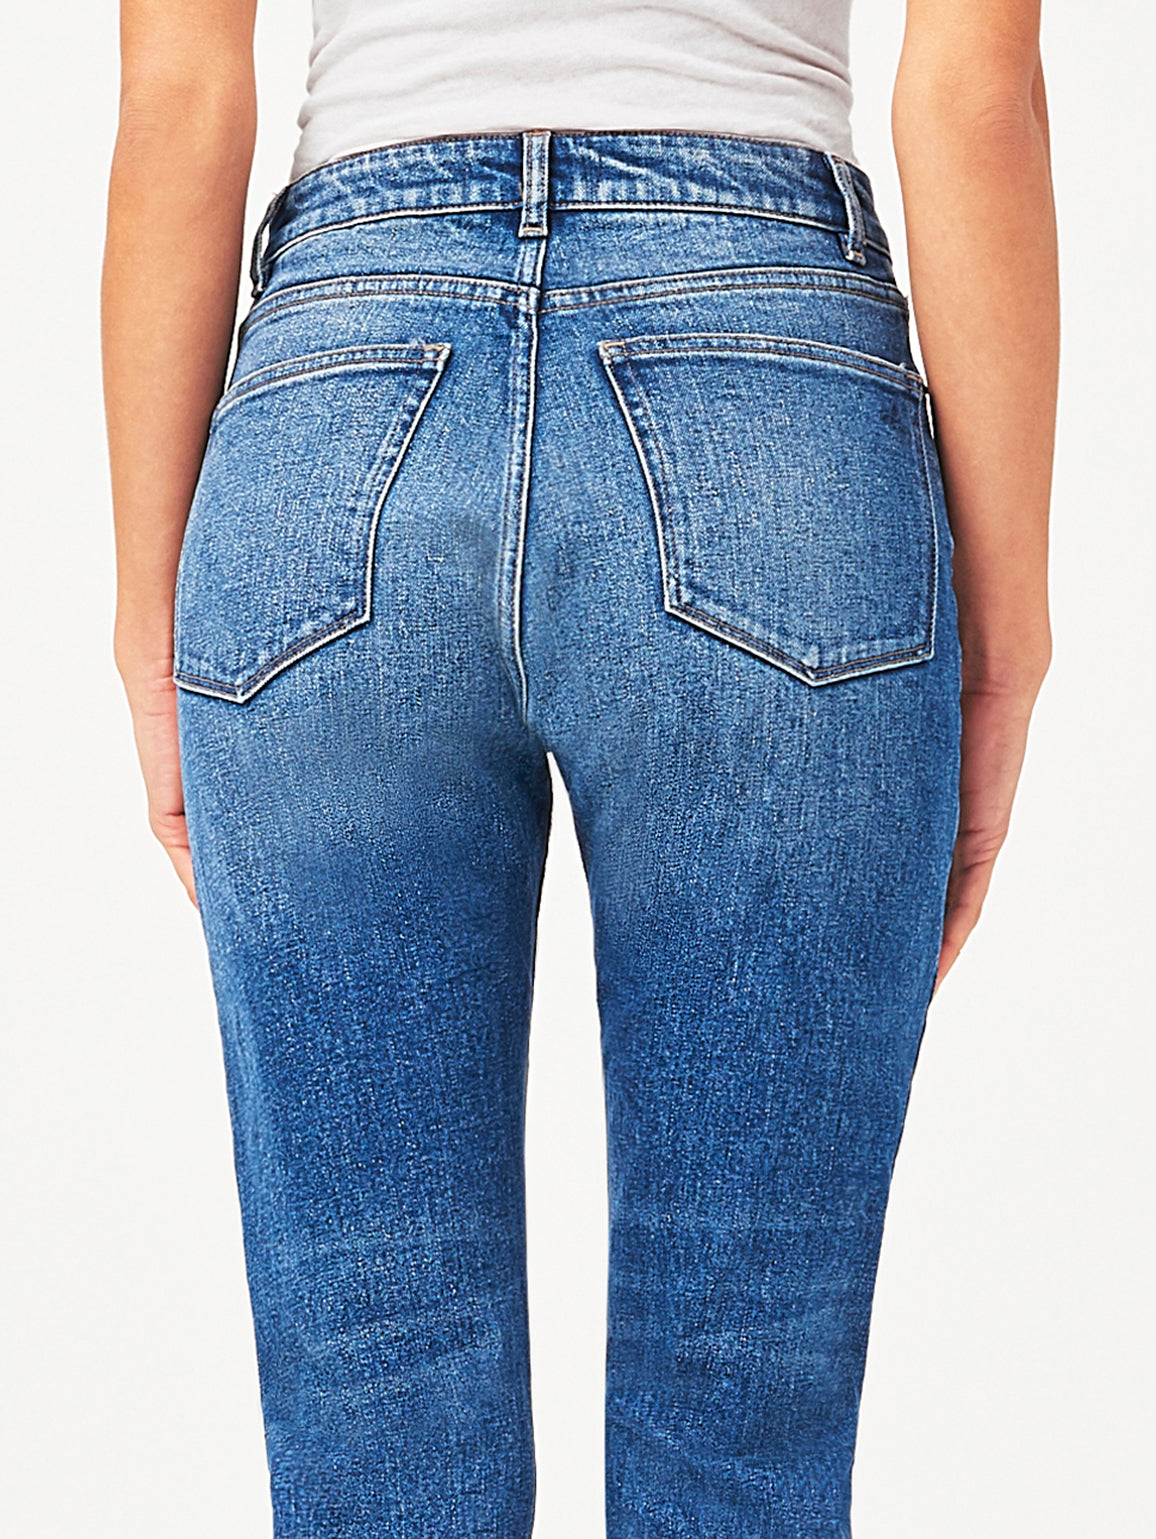 Bella Crop High Rise Vintage Slim | Grandview DL 1961 Denim